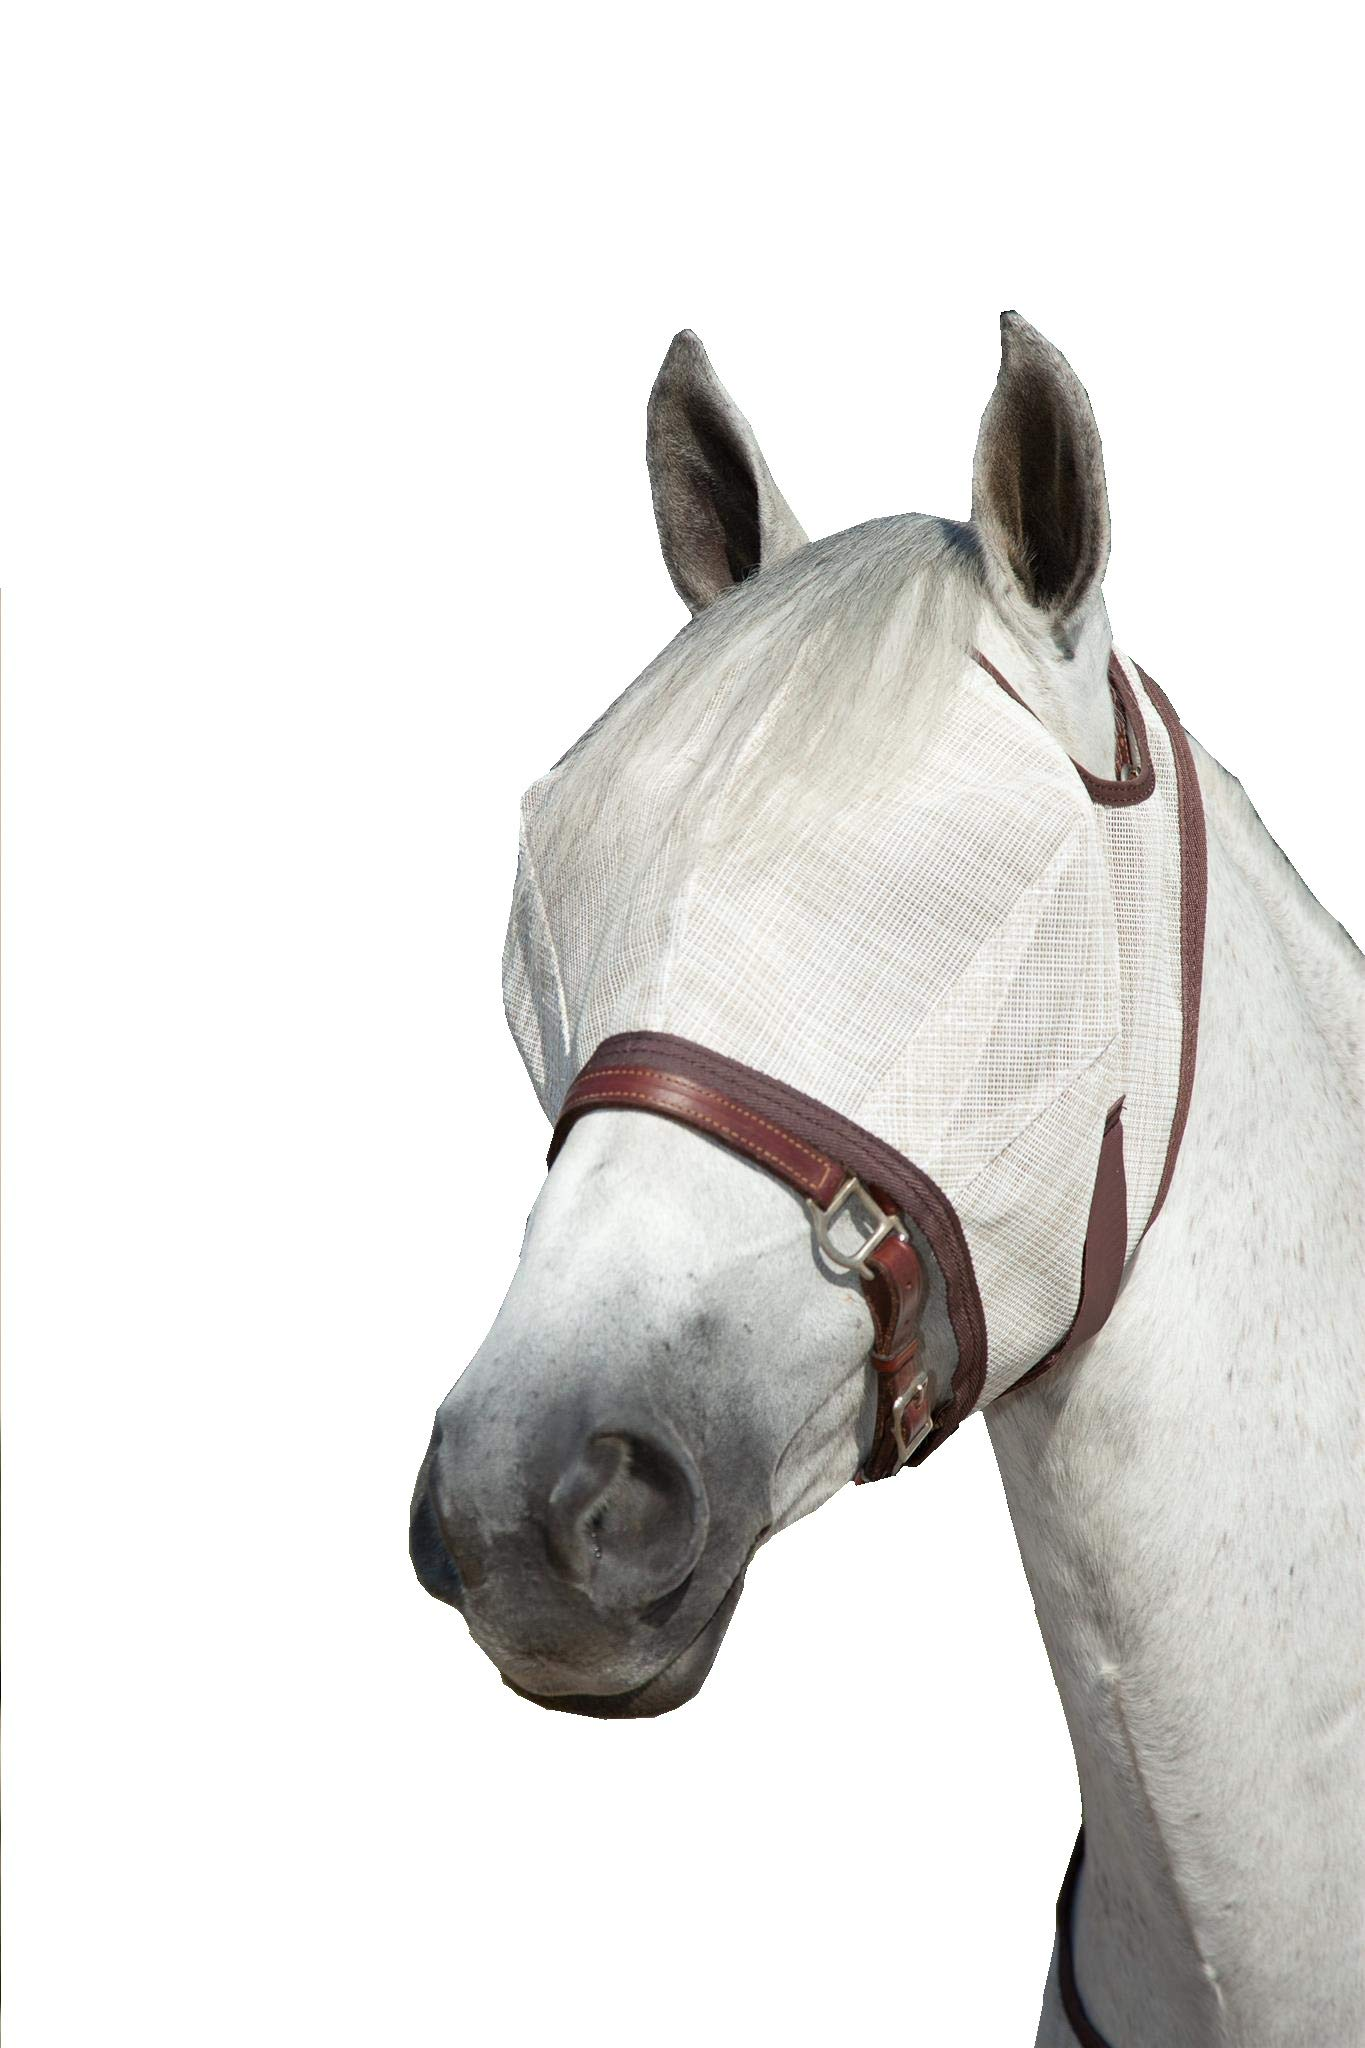 Kensington Natural Fly Mask with Web Trim - Protects Horses Face Eyes from Biting Insects and UV Rays While Allowing Full Visibility - Ears and Forelock Able to Come Through The Mask (Large, Grey) by Kensington Protective Products